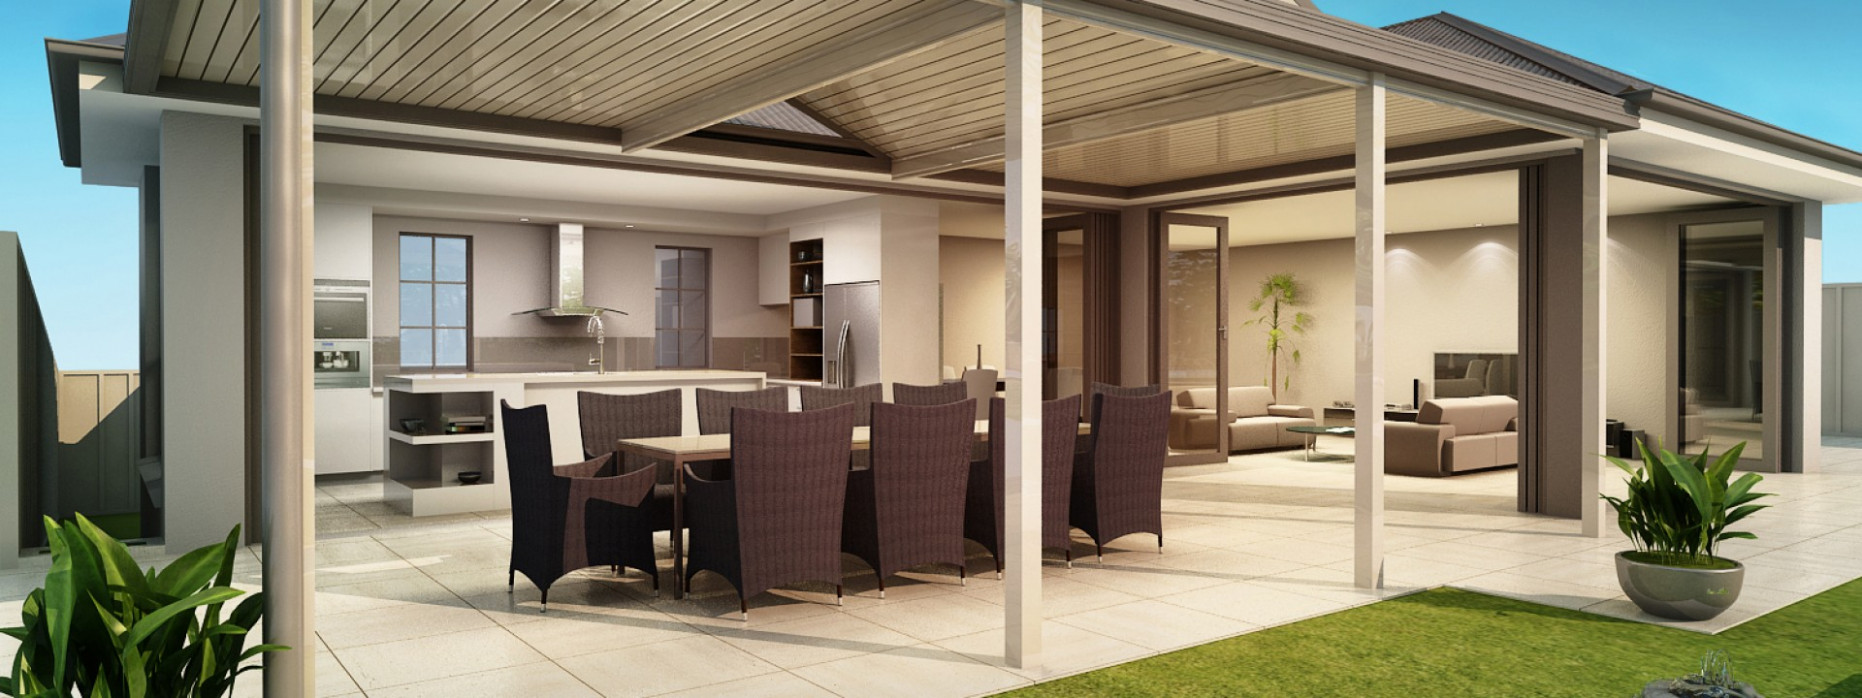 Patios and Carports | Ascent Building Solutions